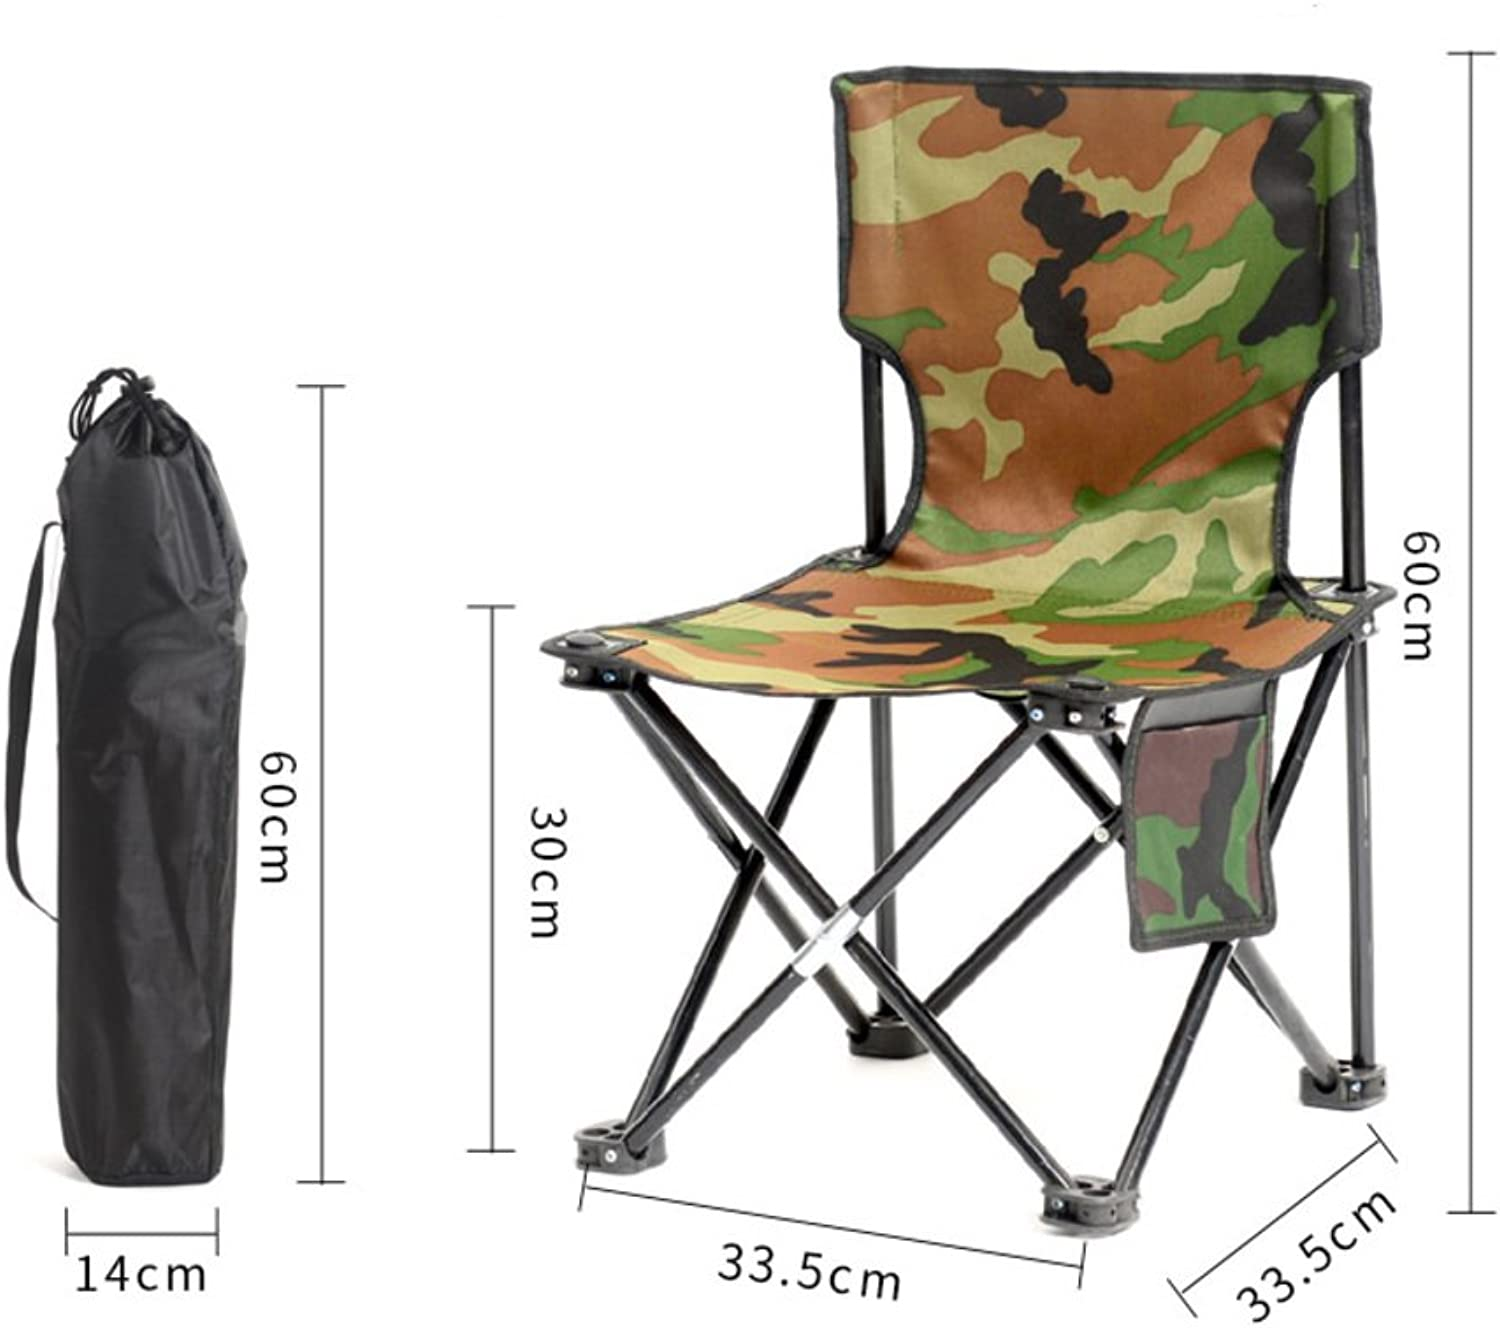 Outdoor Folding Chair, Portable Camping Beach Fishing Chair Sketch Chair Mazar Small Chair Folding StoolD